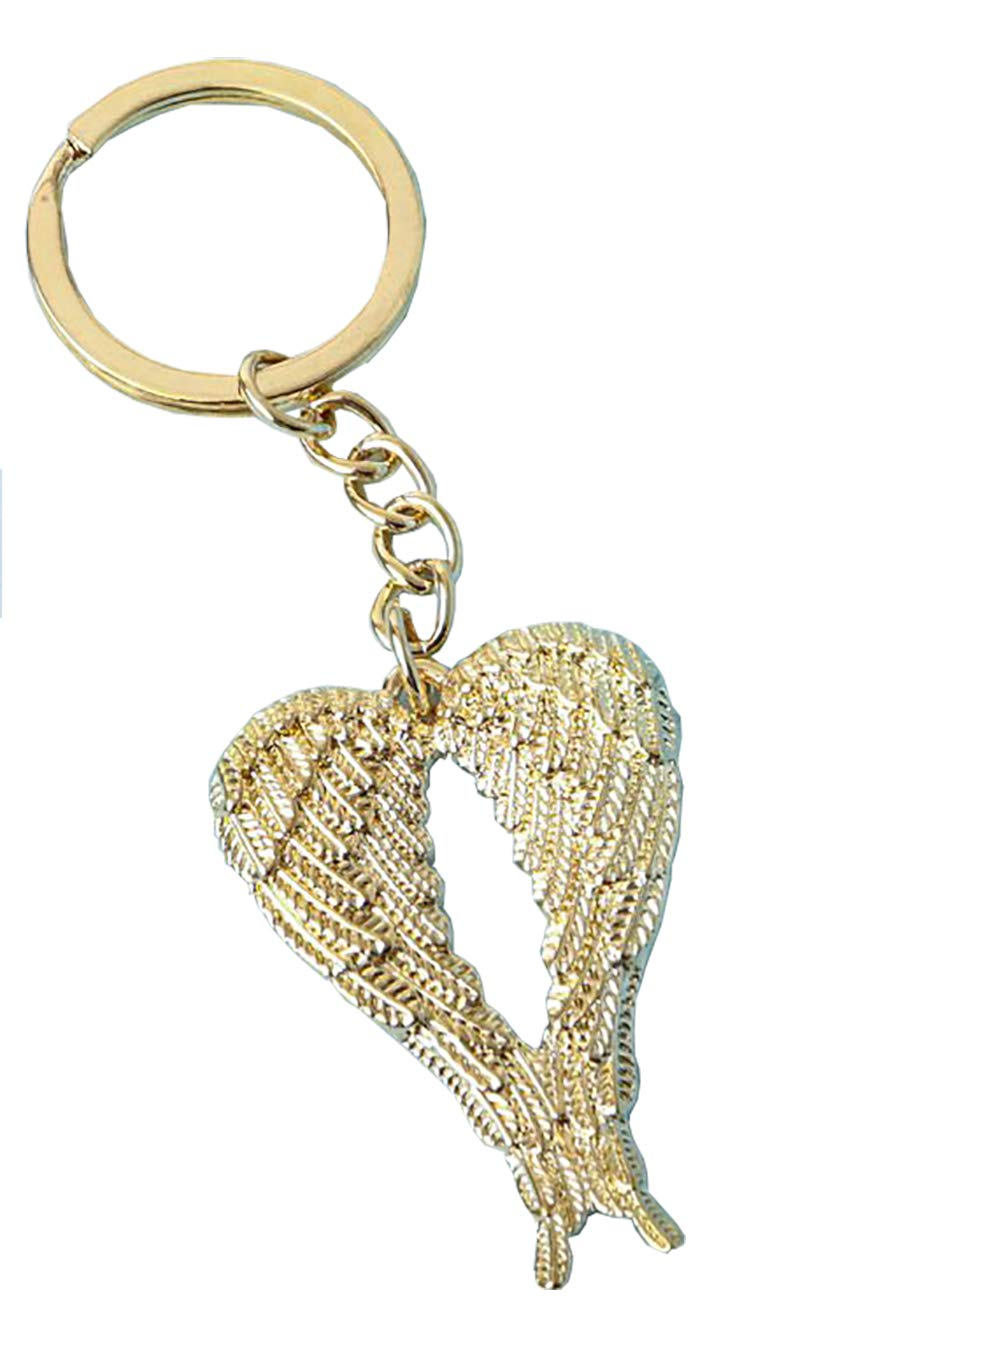 12 Fashioncraft Gold Guardian Angel Wings Metal Key Chain Key Holder Christening, Communion, Baptism, Confirmation, Christian Religious Favors